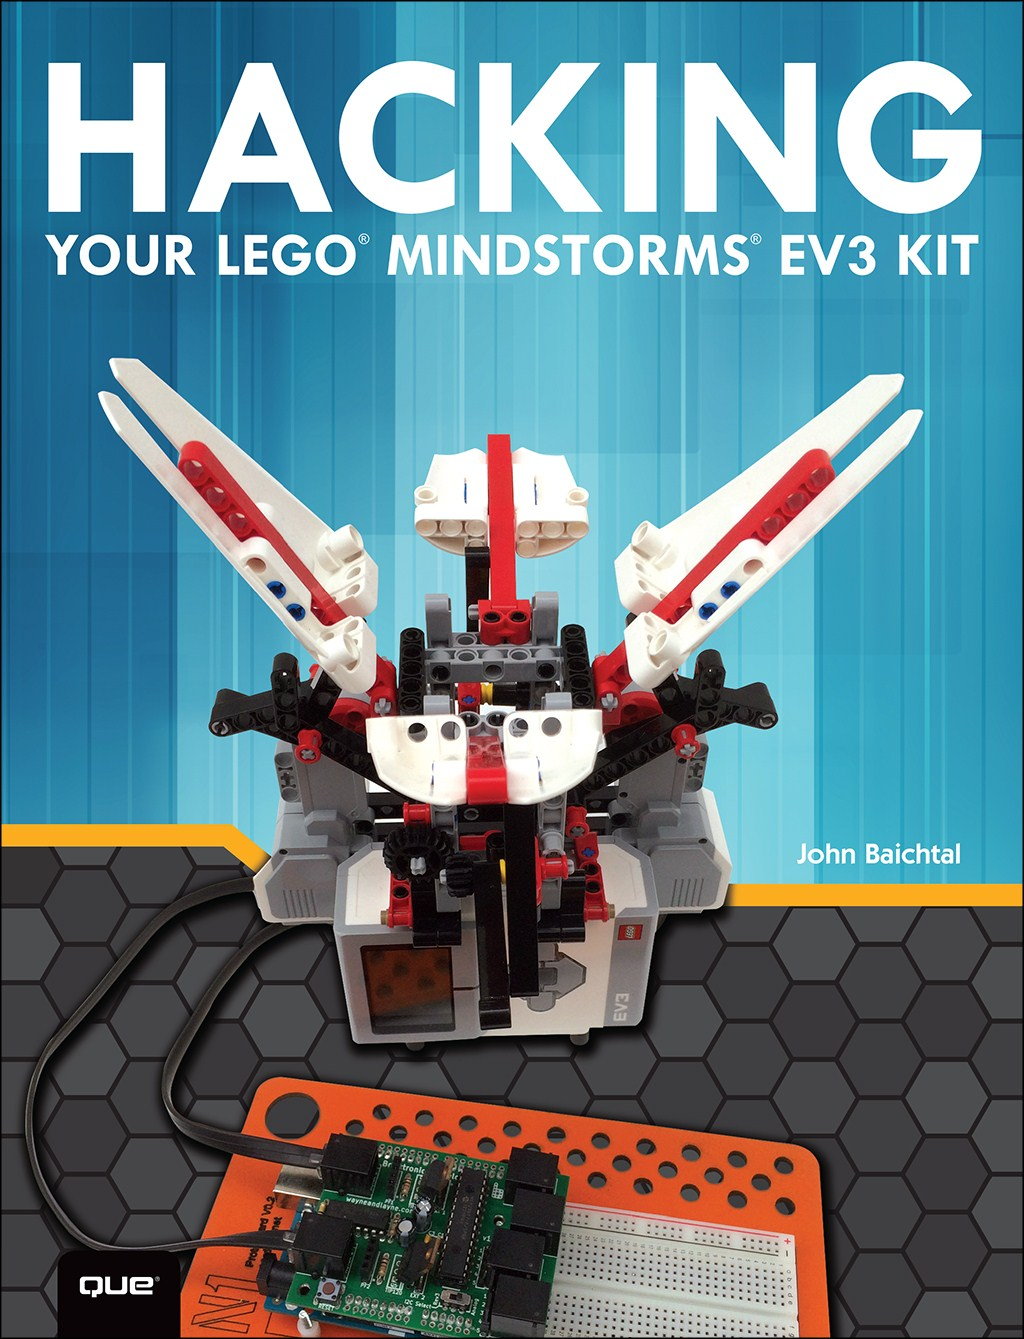 Lego Mindstorms Ev3 Instructions